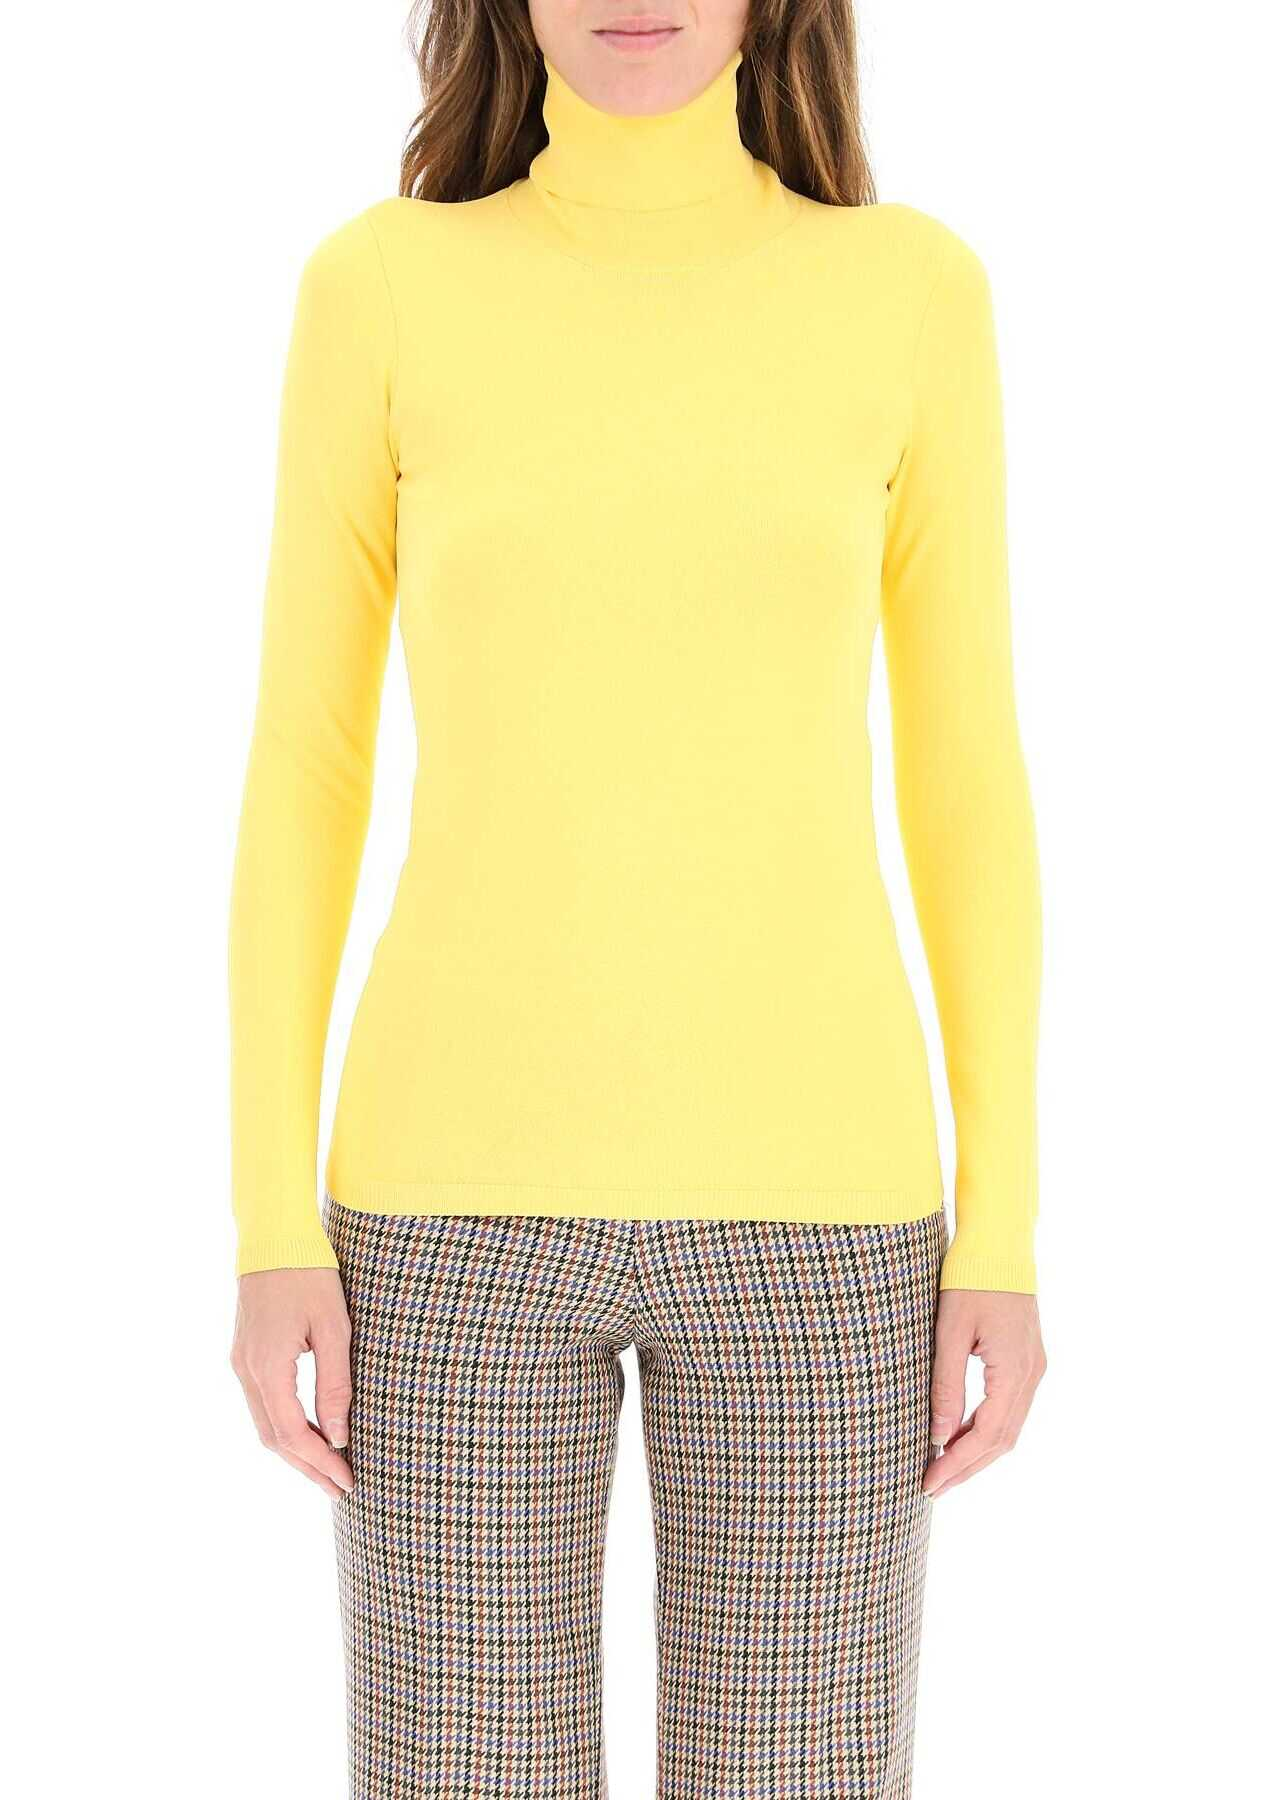 Stella McCartney Turtleneck Sweater In Compact Knit 601794 S2076 PALE YELL image0